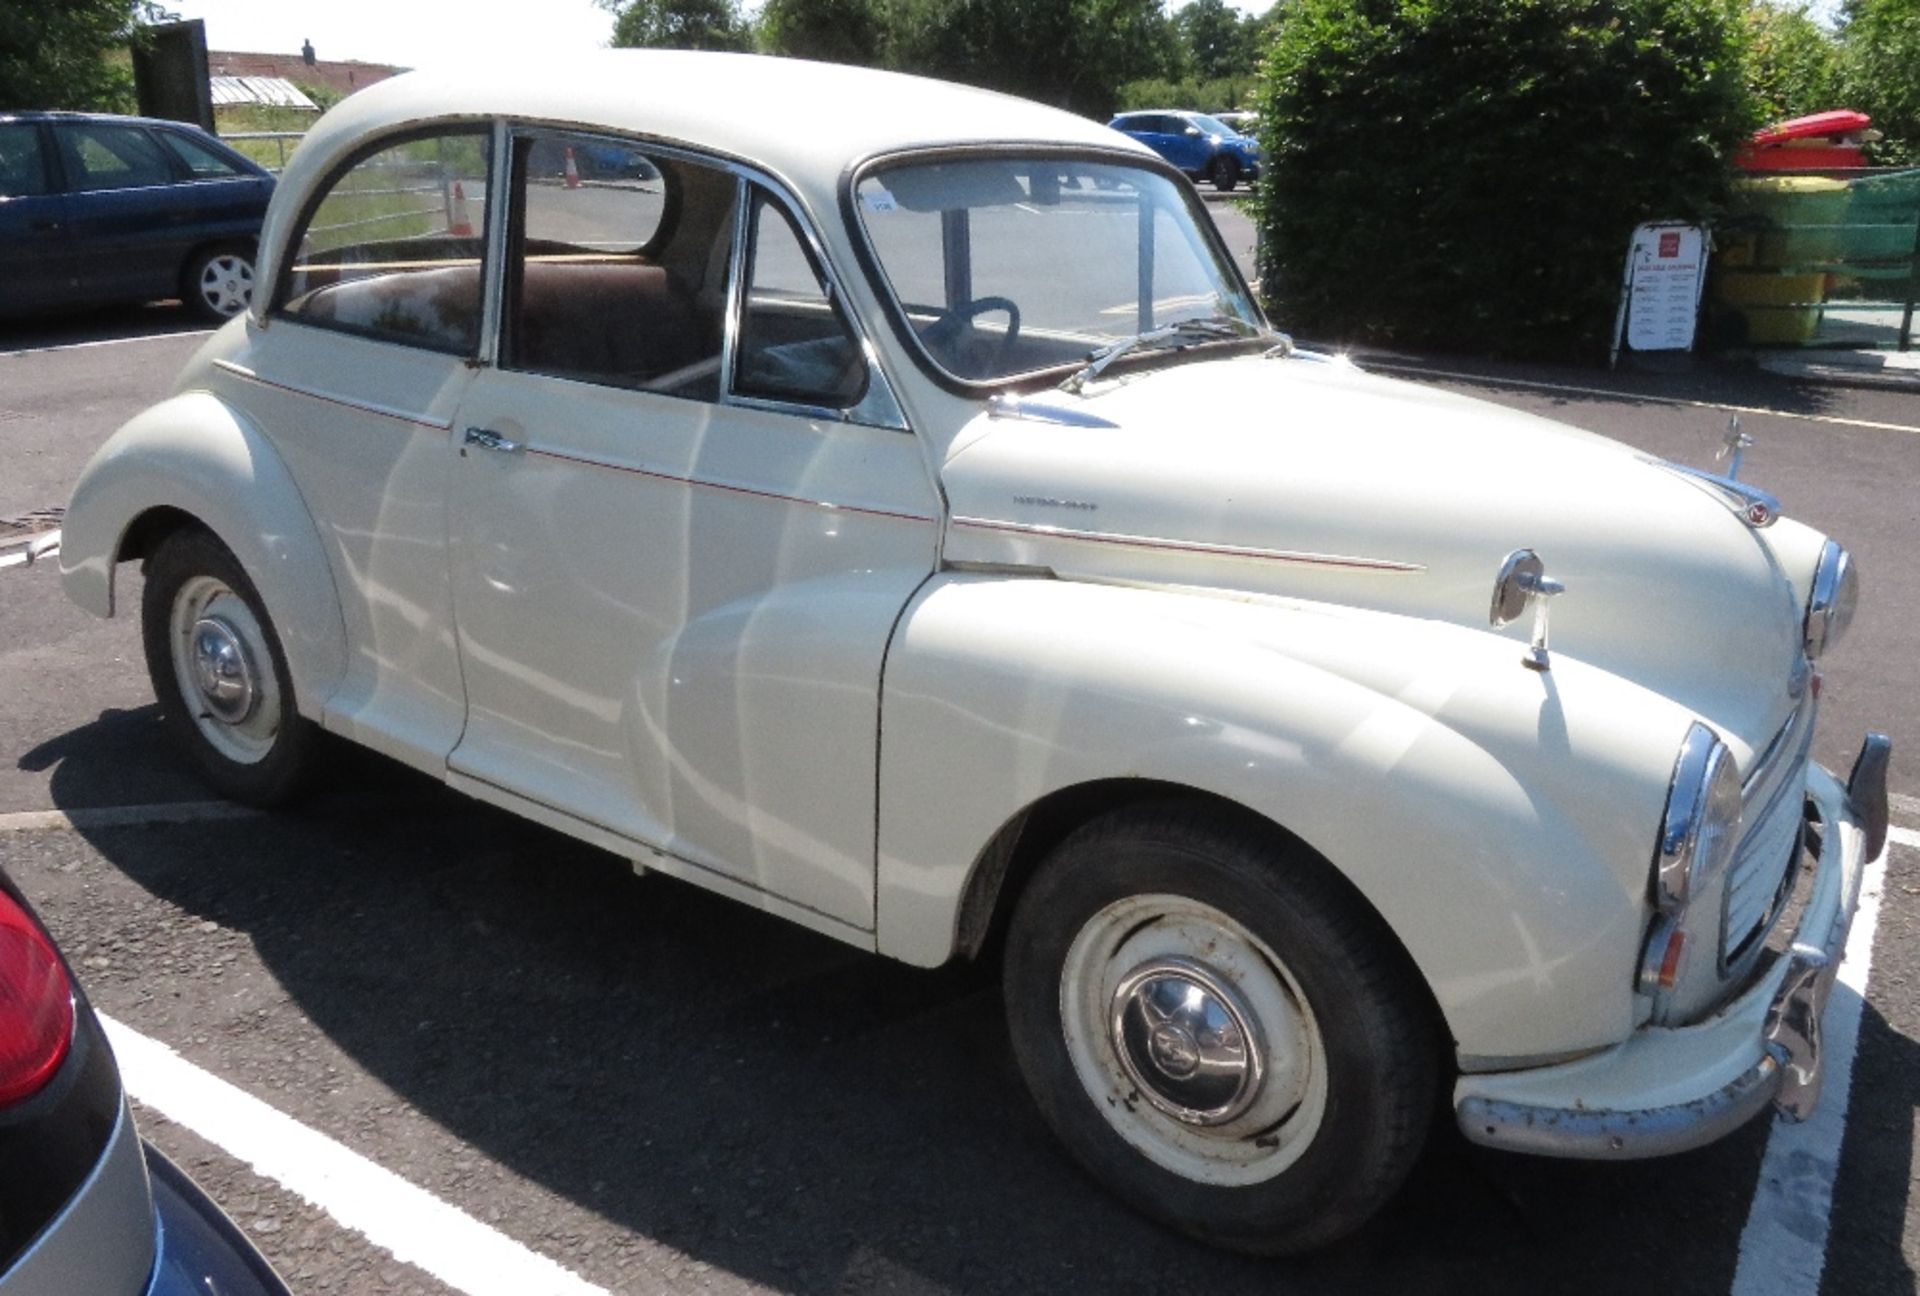 Lot 126 - Morris Minor Saloon, Reg no 293 FMJ, we have the keys & V5, this vehicle was driven in by the vendor